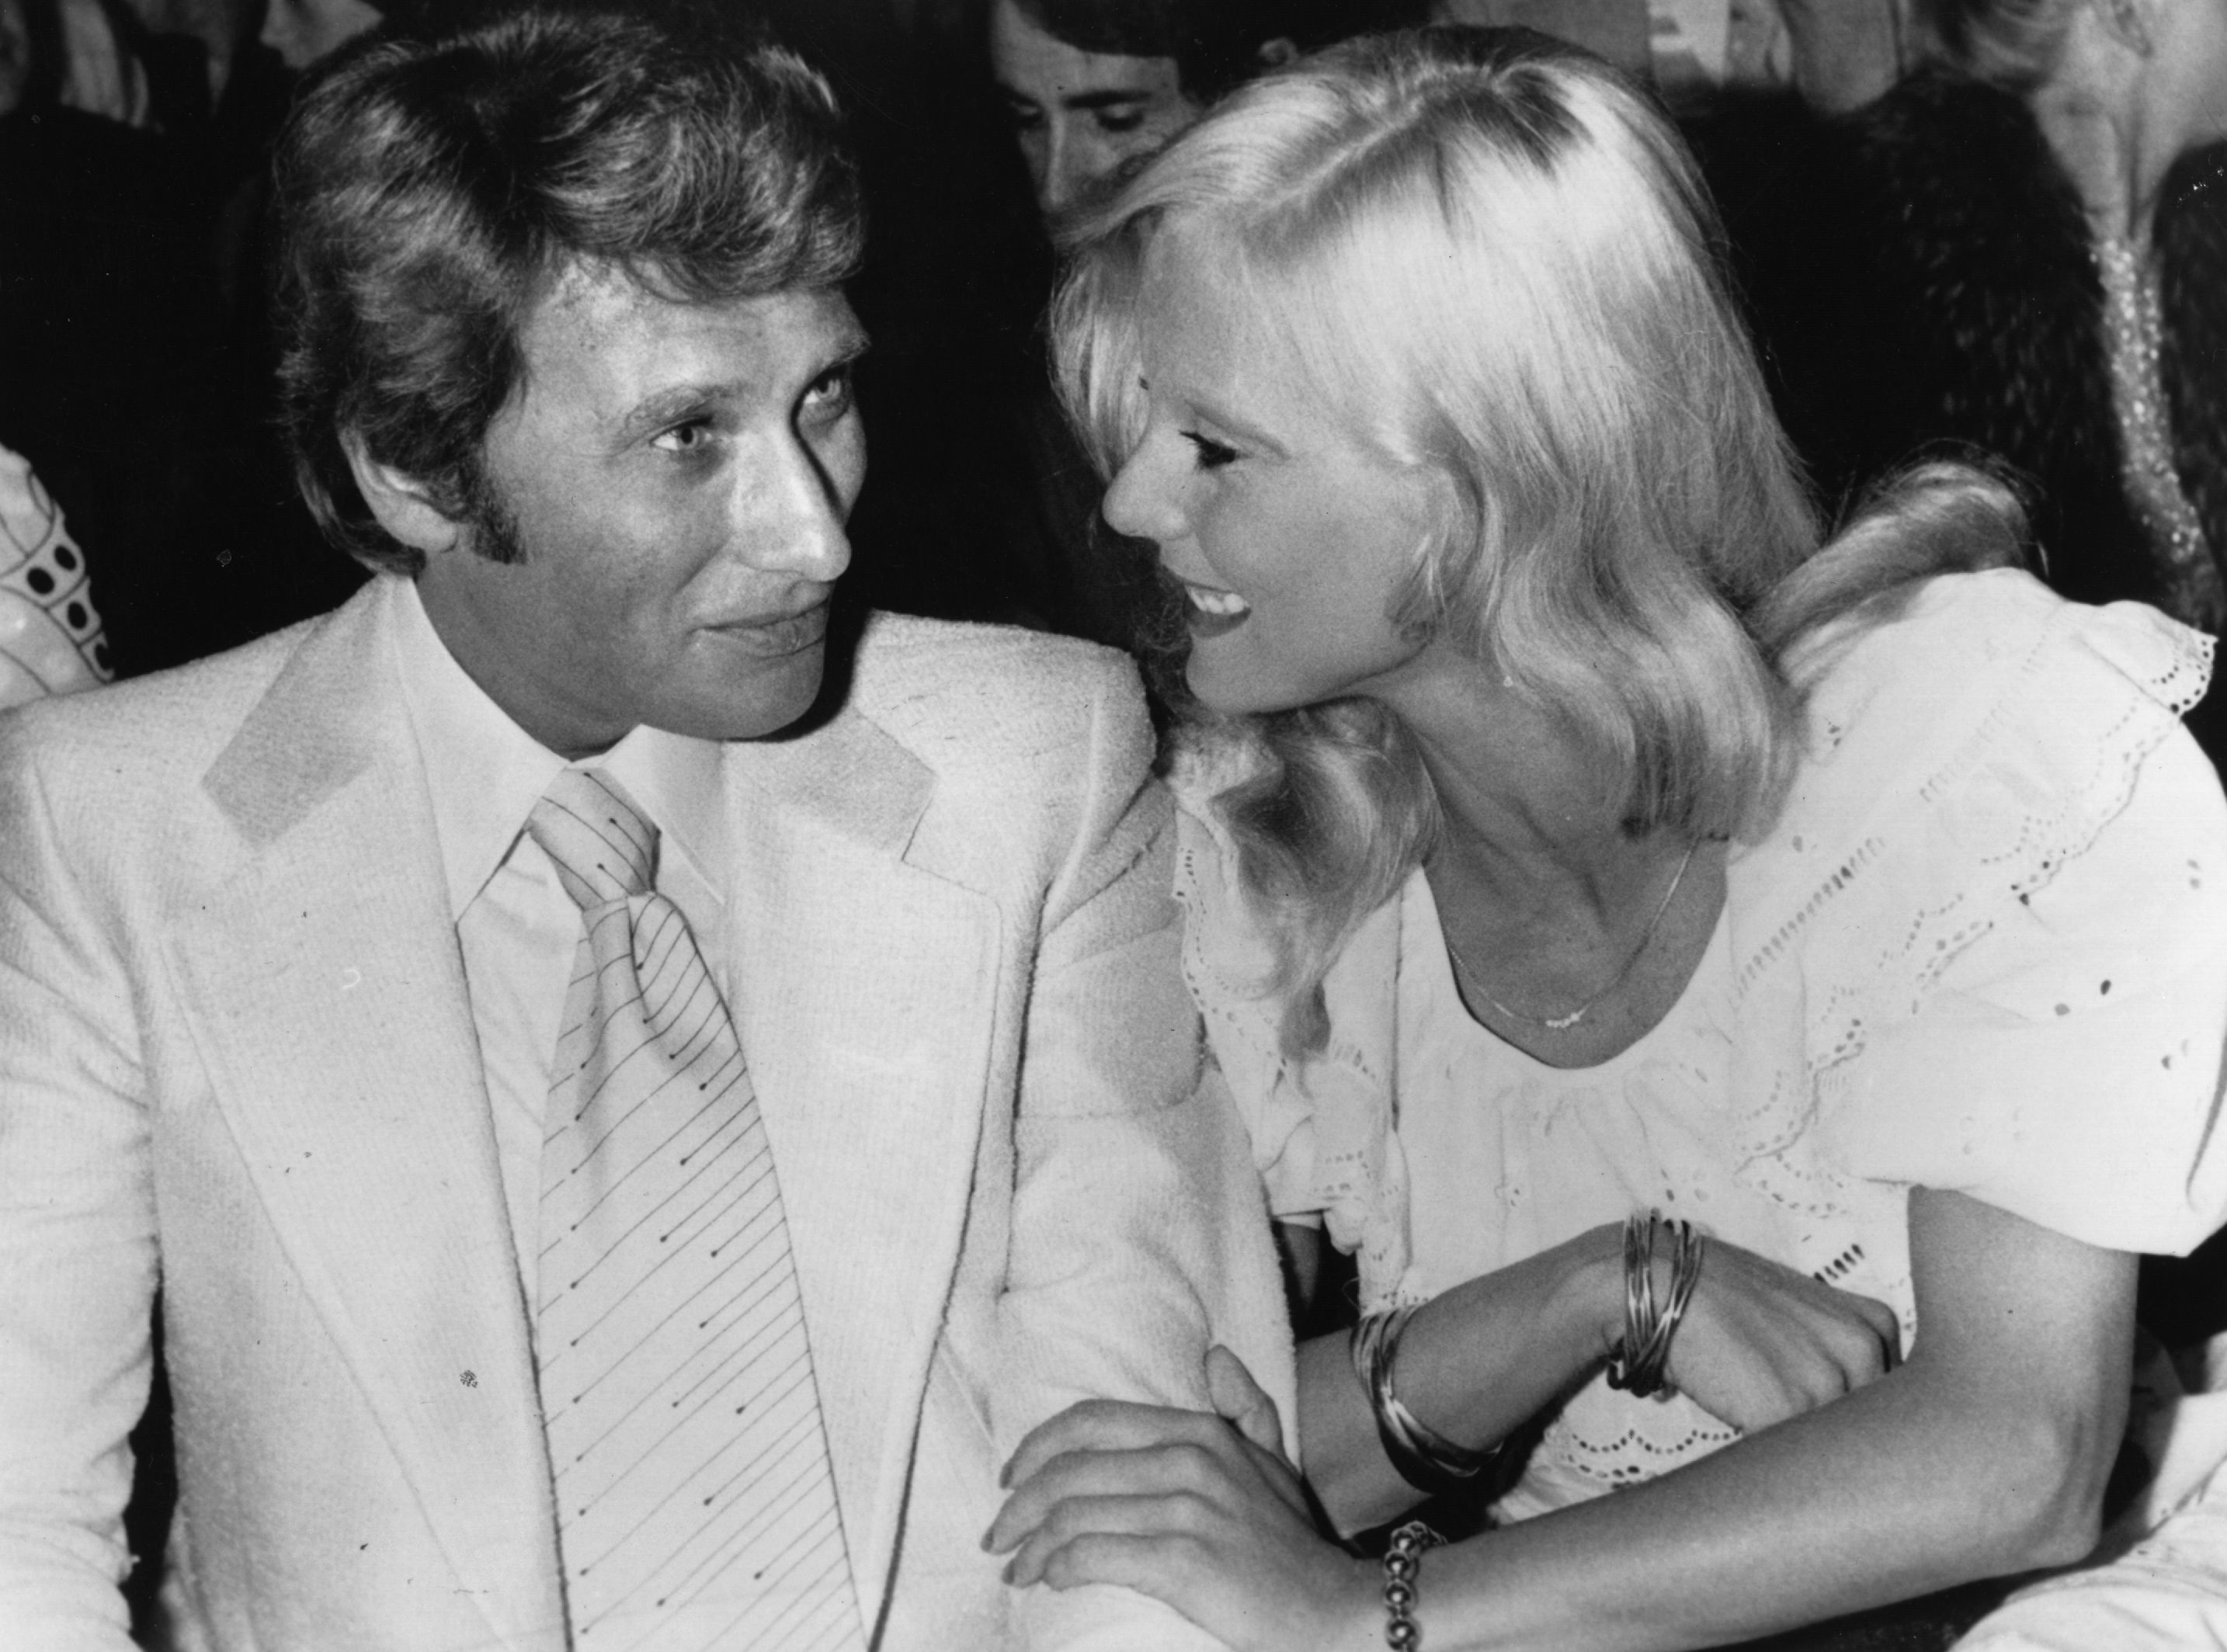 Johnny Hallyday et Sylvie Vartan, chanteurs pop français | Photo : Getty Image